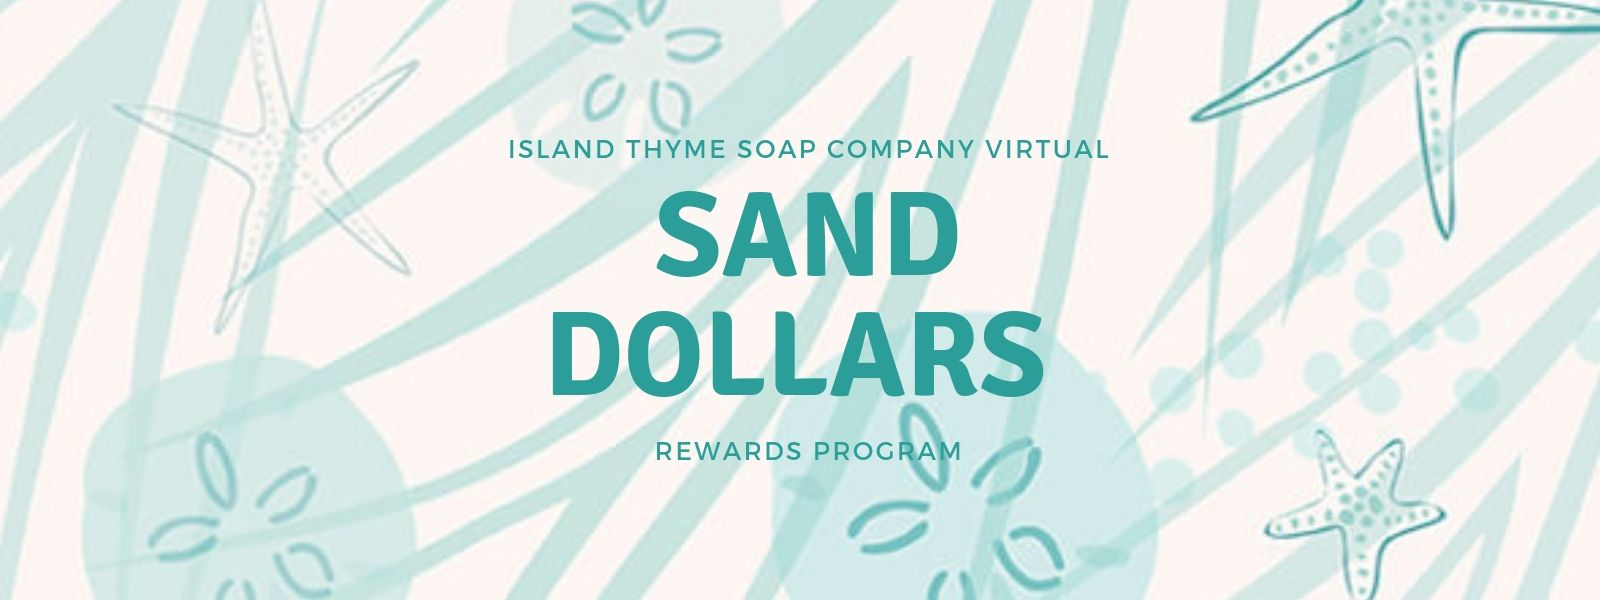 ITSC Sand Dollar Rewards